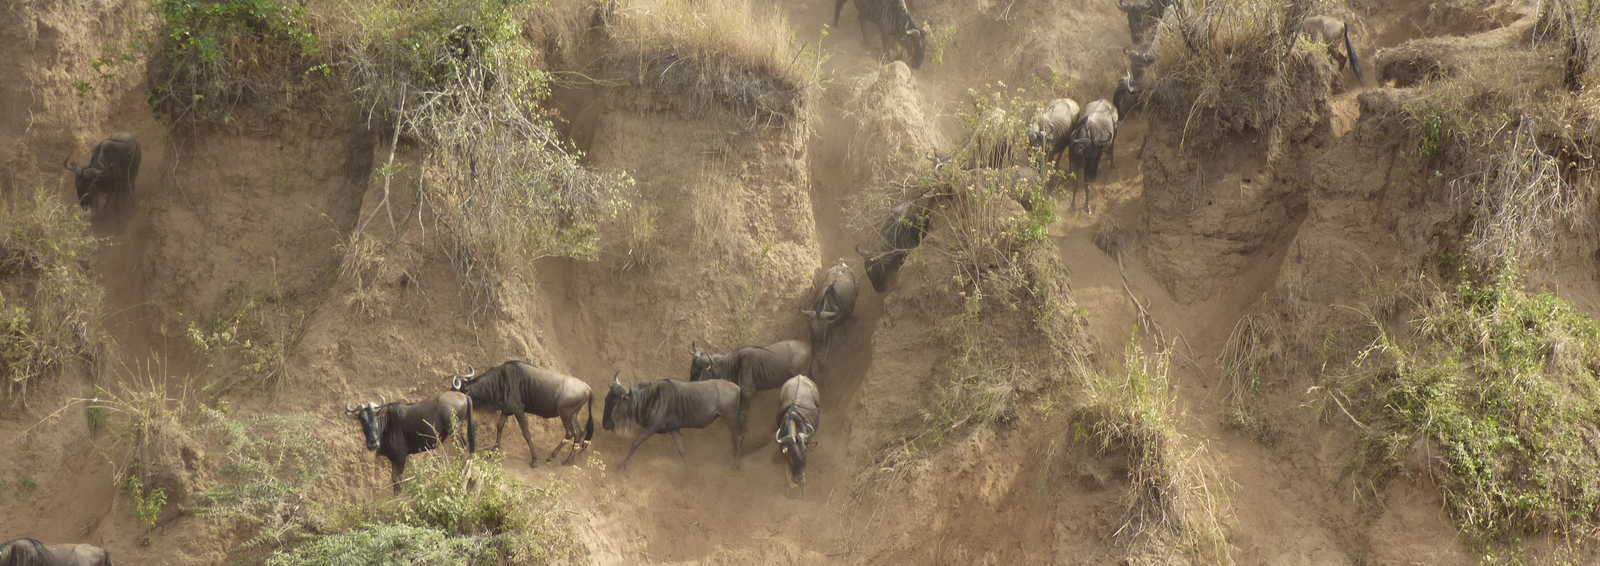 Migration in the Mara